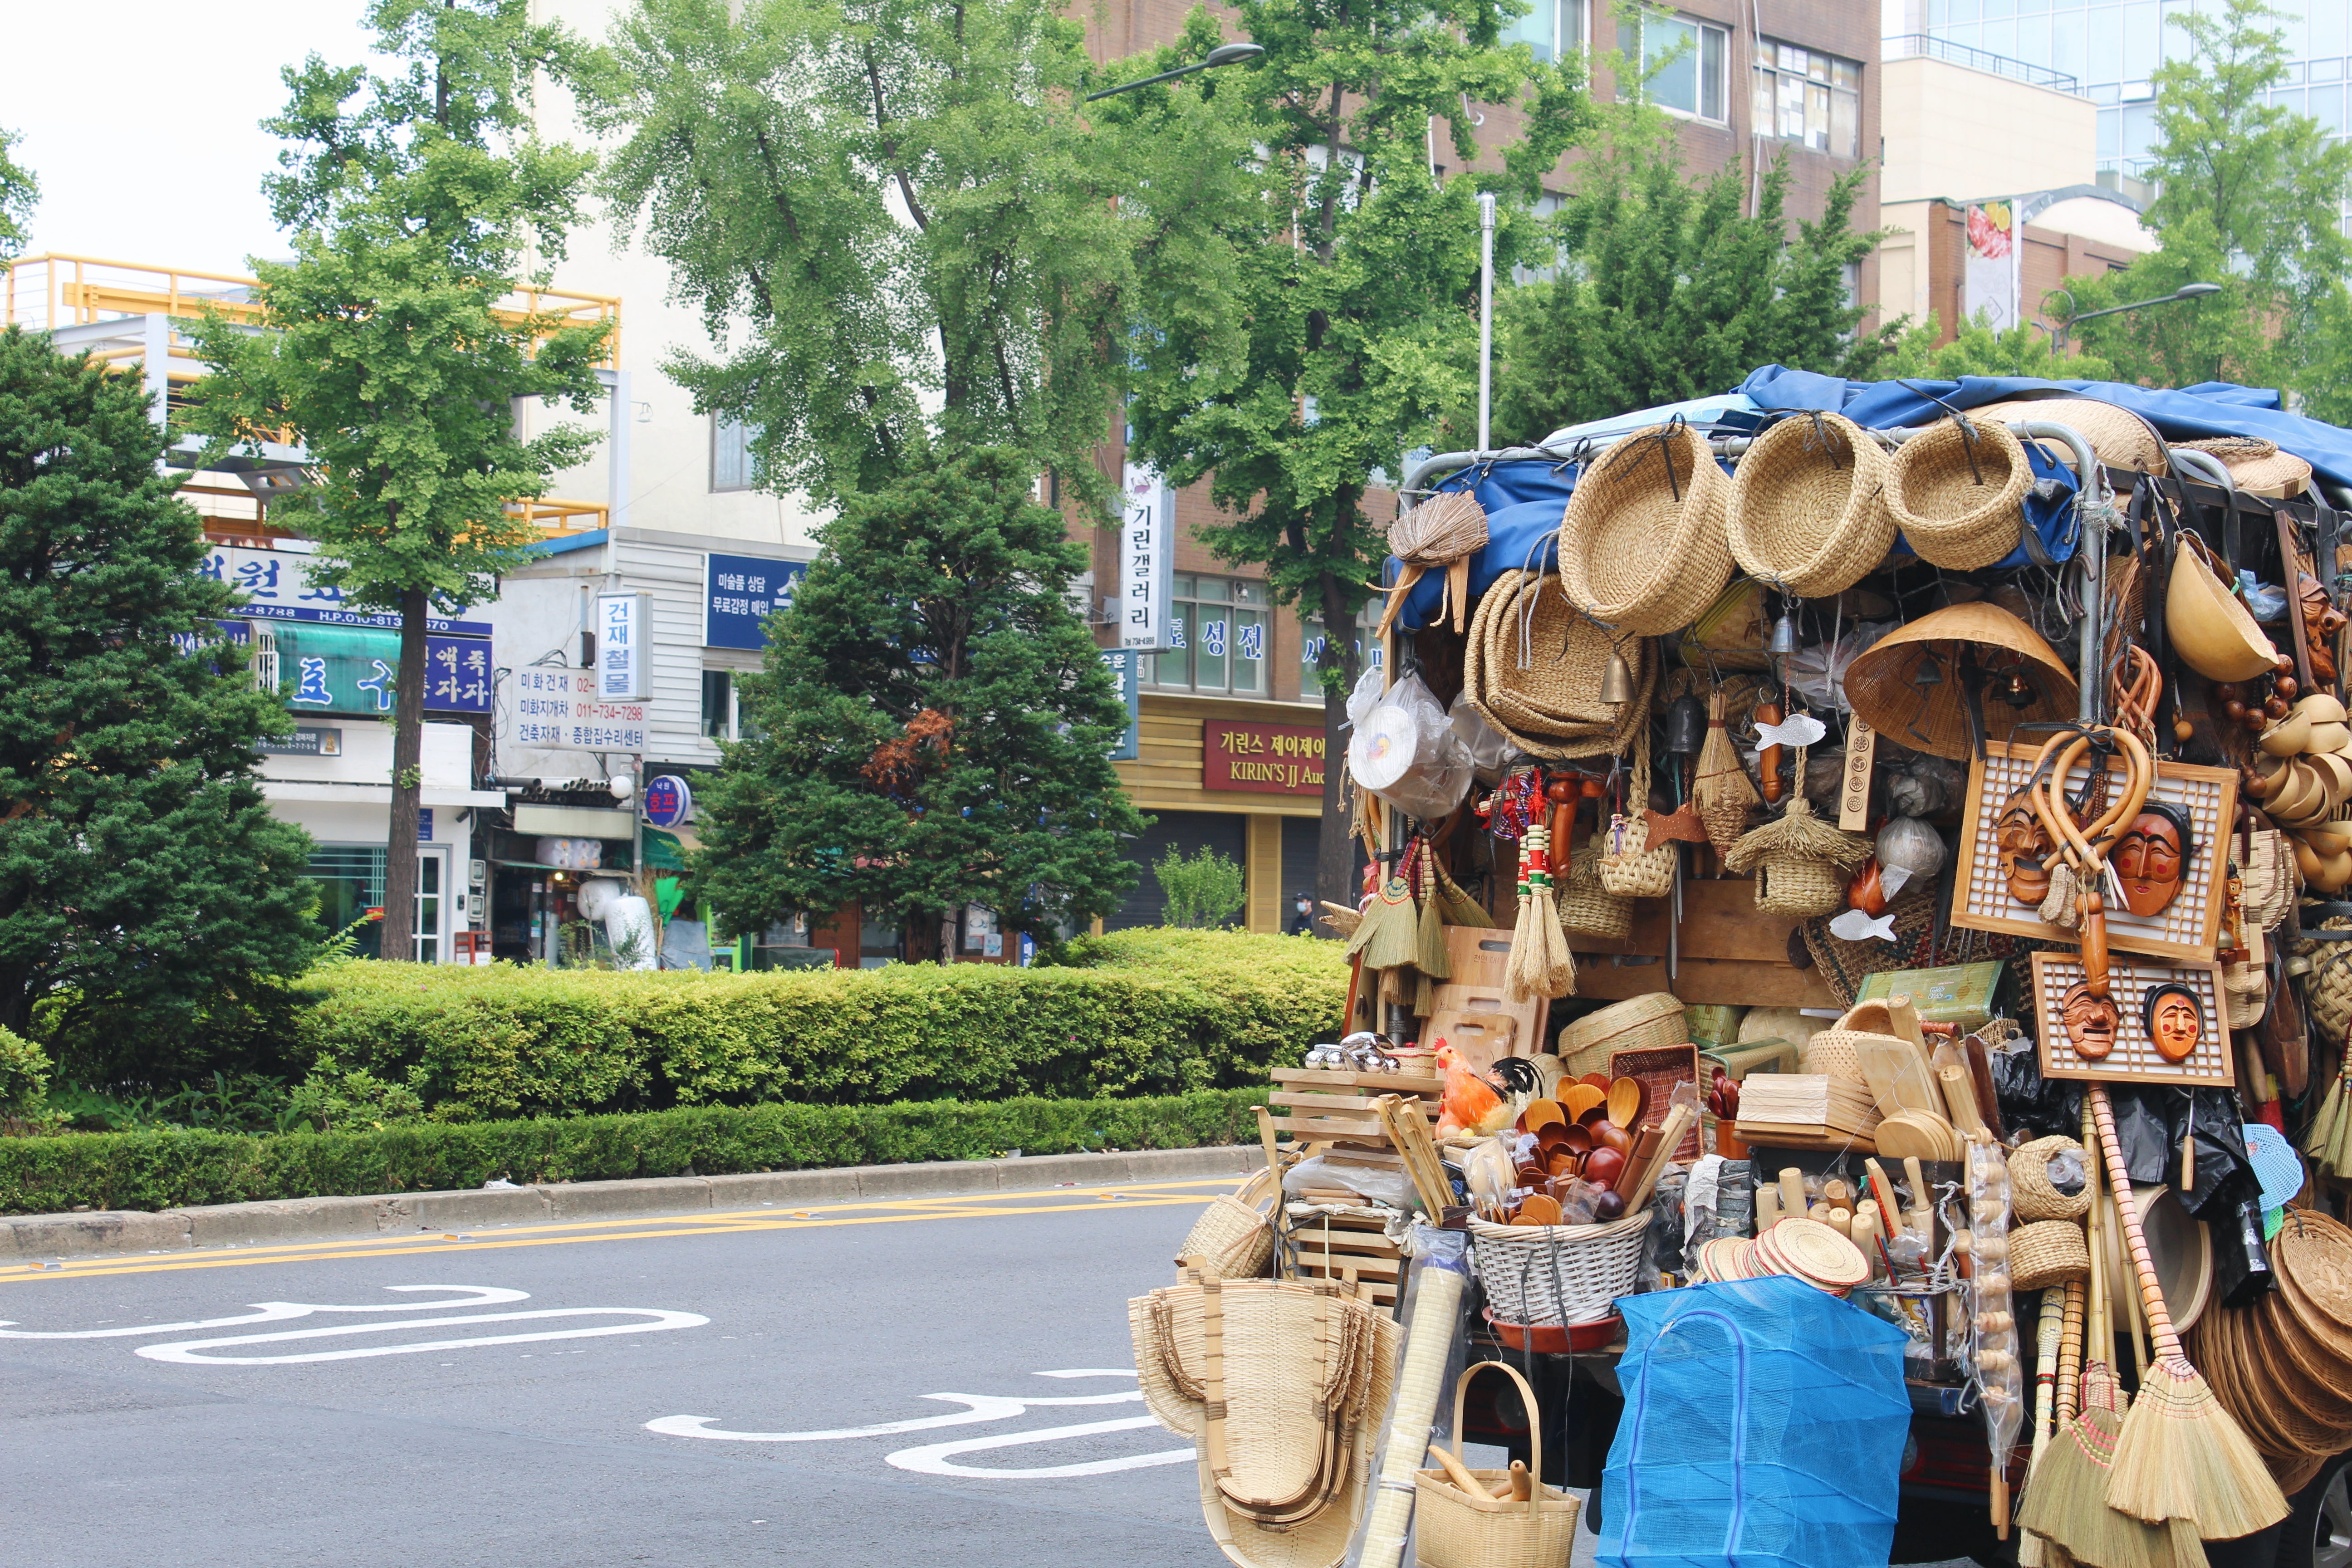 A cart filled with (what I assume to be) handmade wooden and woven objects.